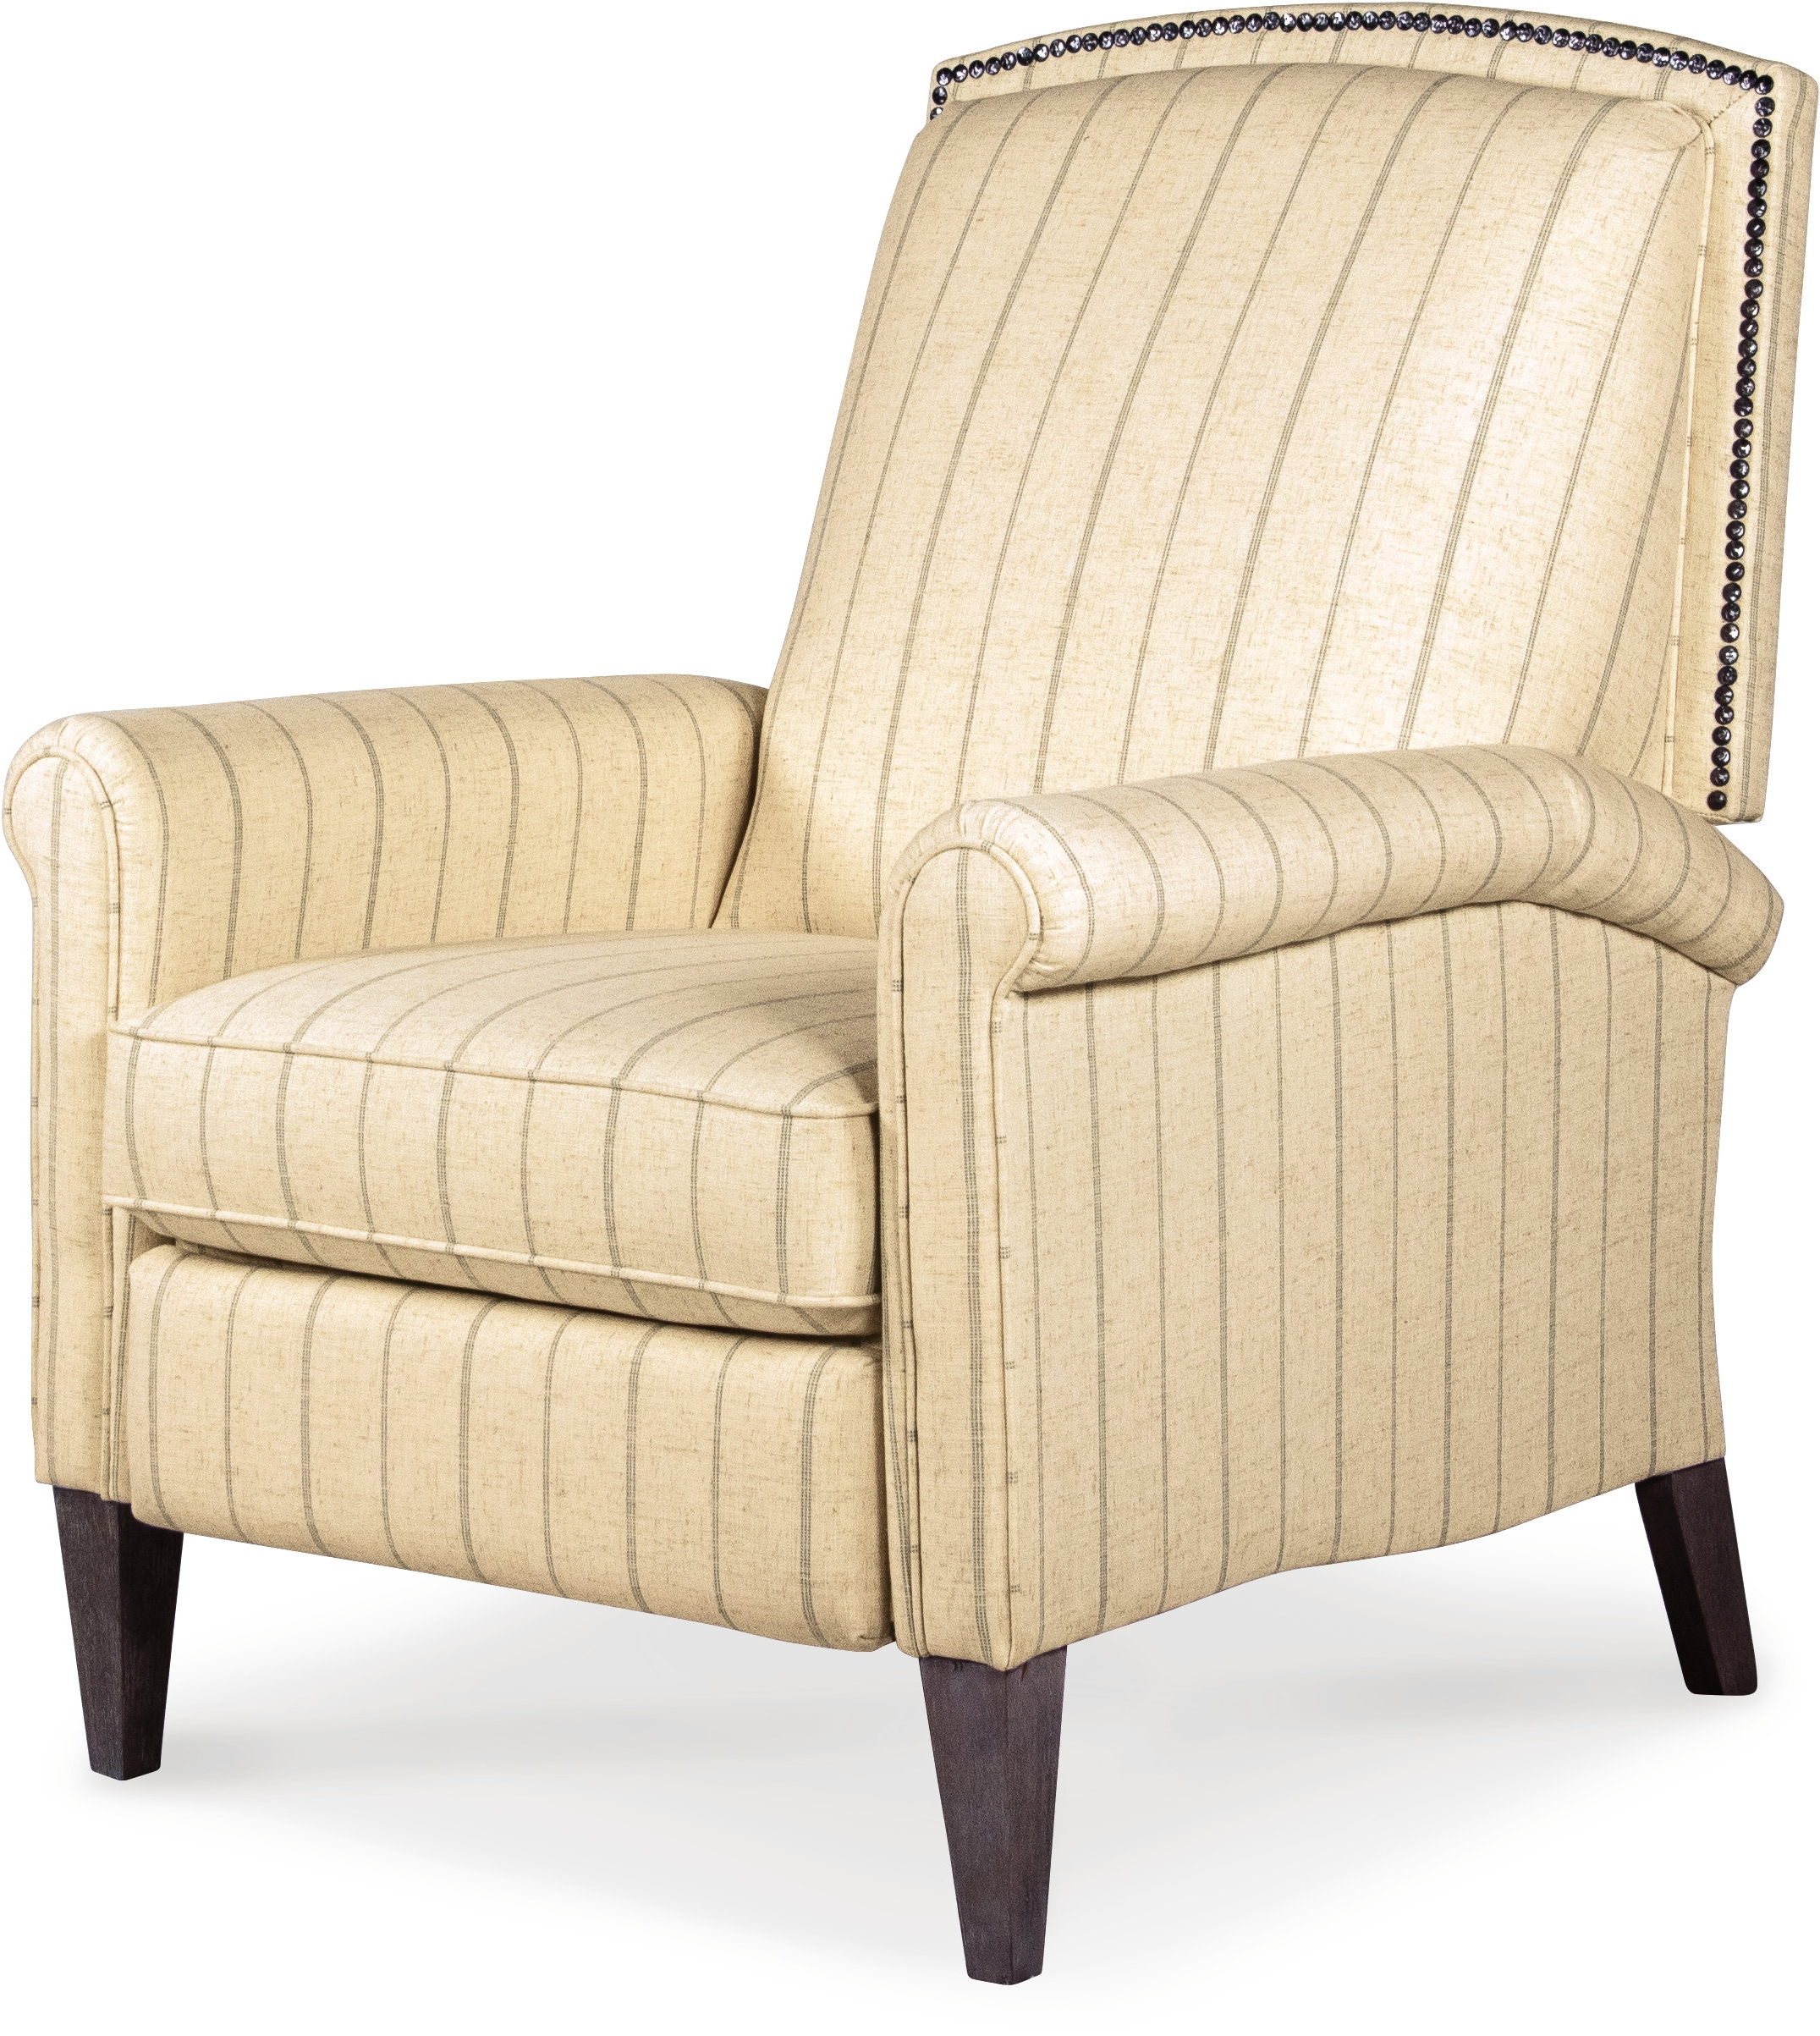 Best And Newest La Z Boy Chandler Manual Recliner (View 18 of 20)